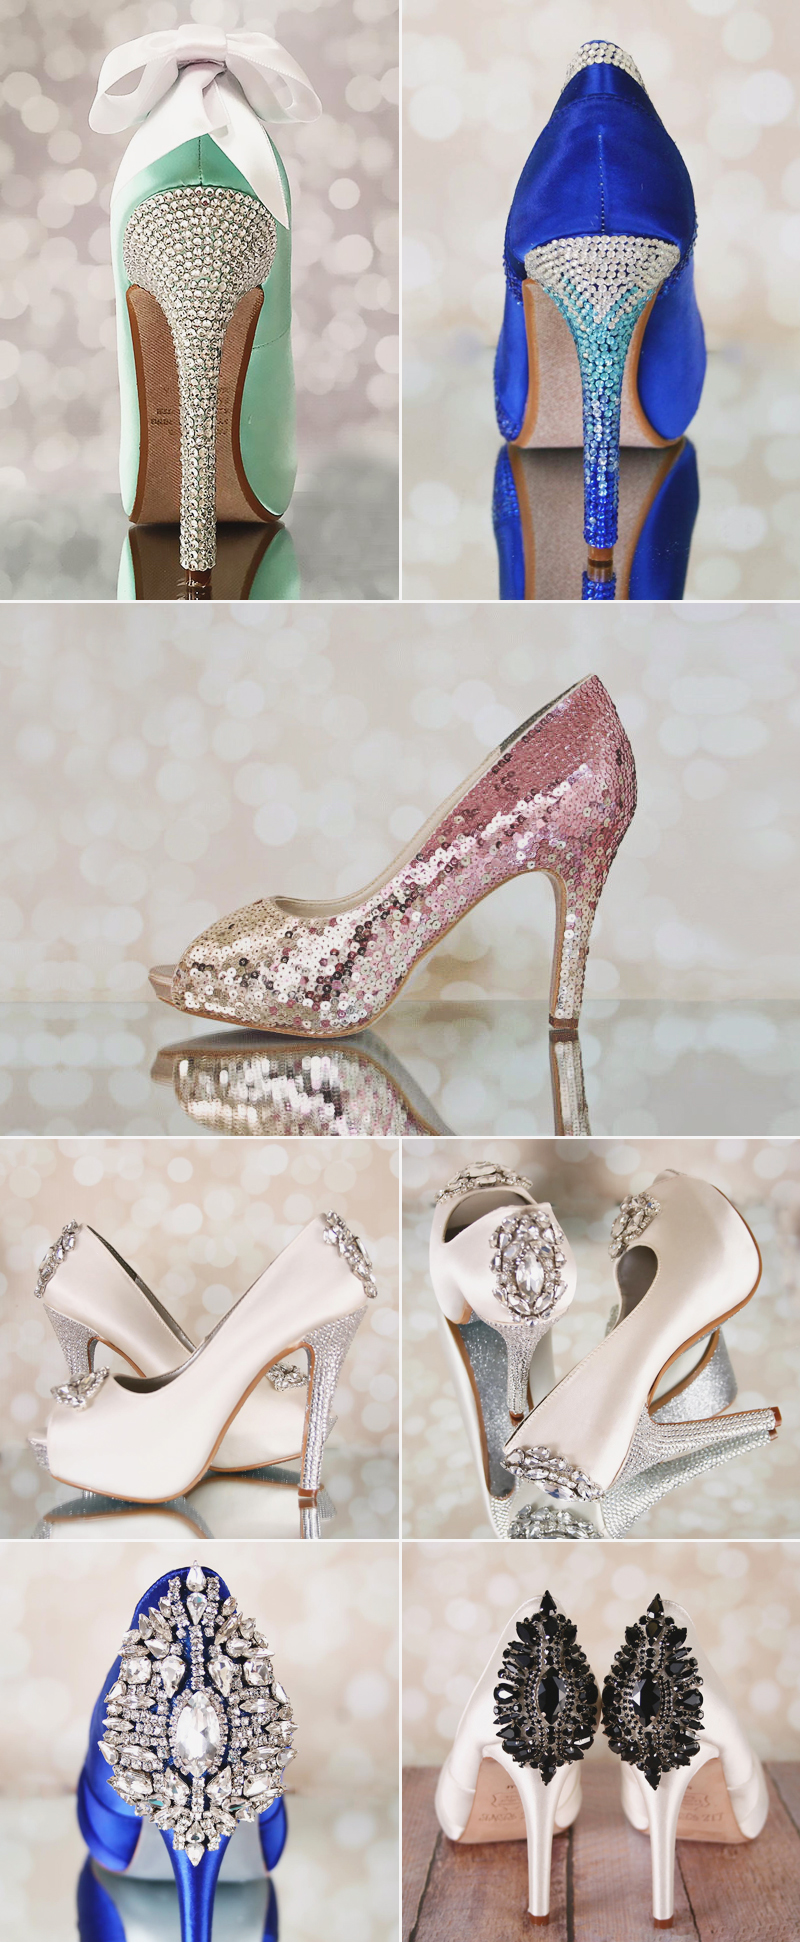 customizedweddingshoes04-Ellie Wren